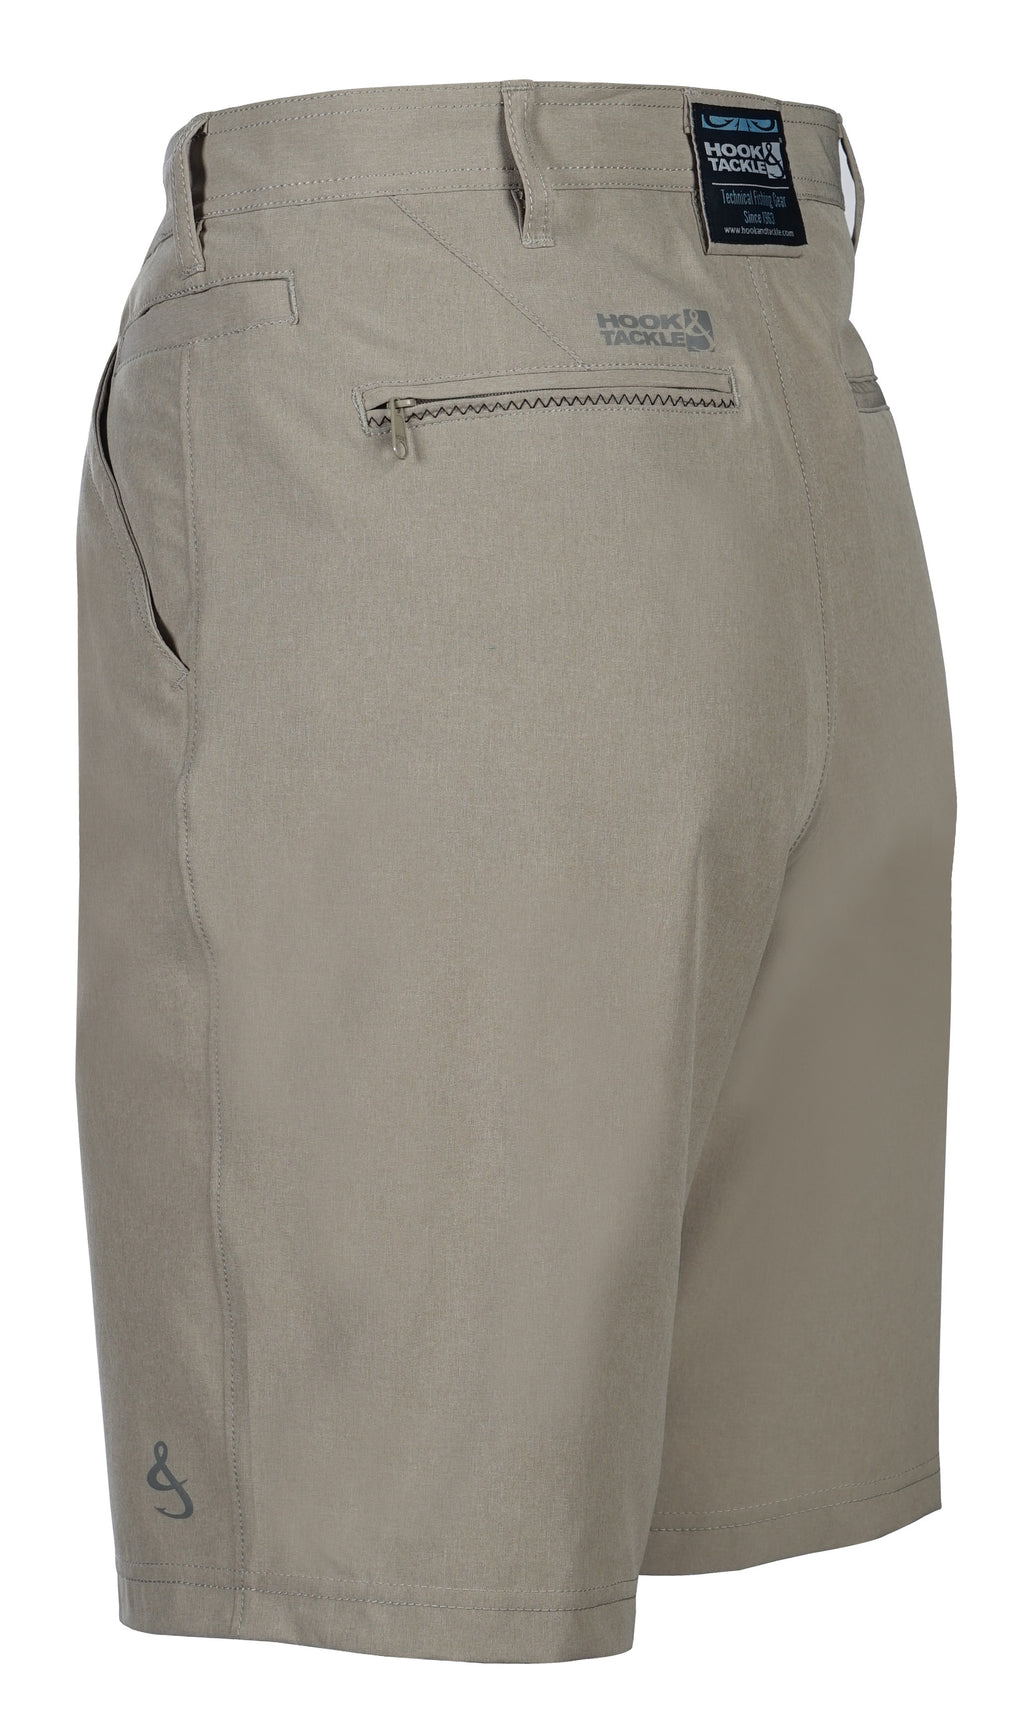 Hi-Tide Hybrid 4-Way Stretch Short, Khaki